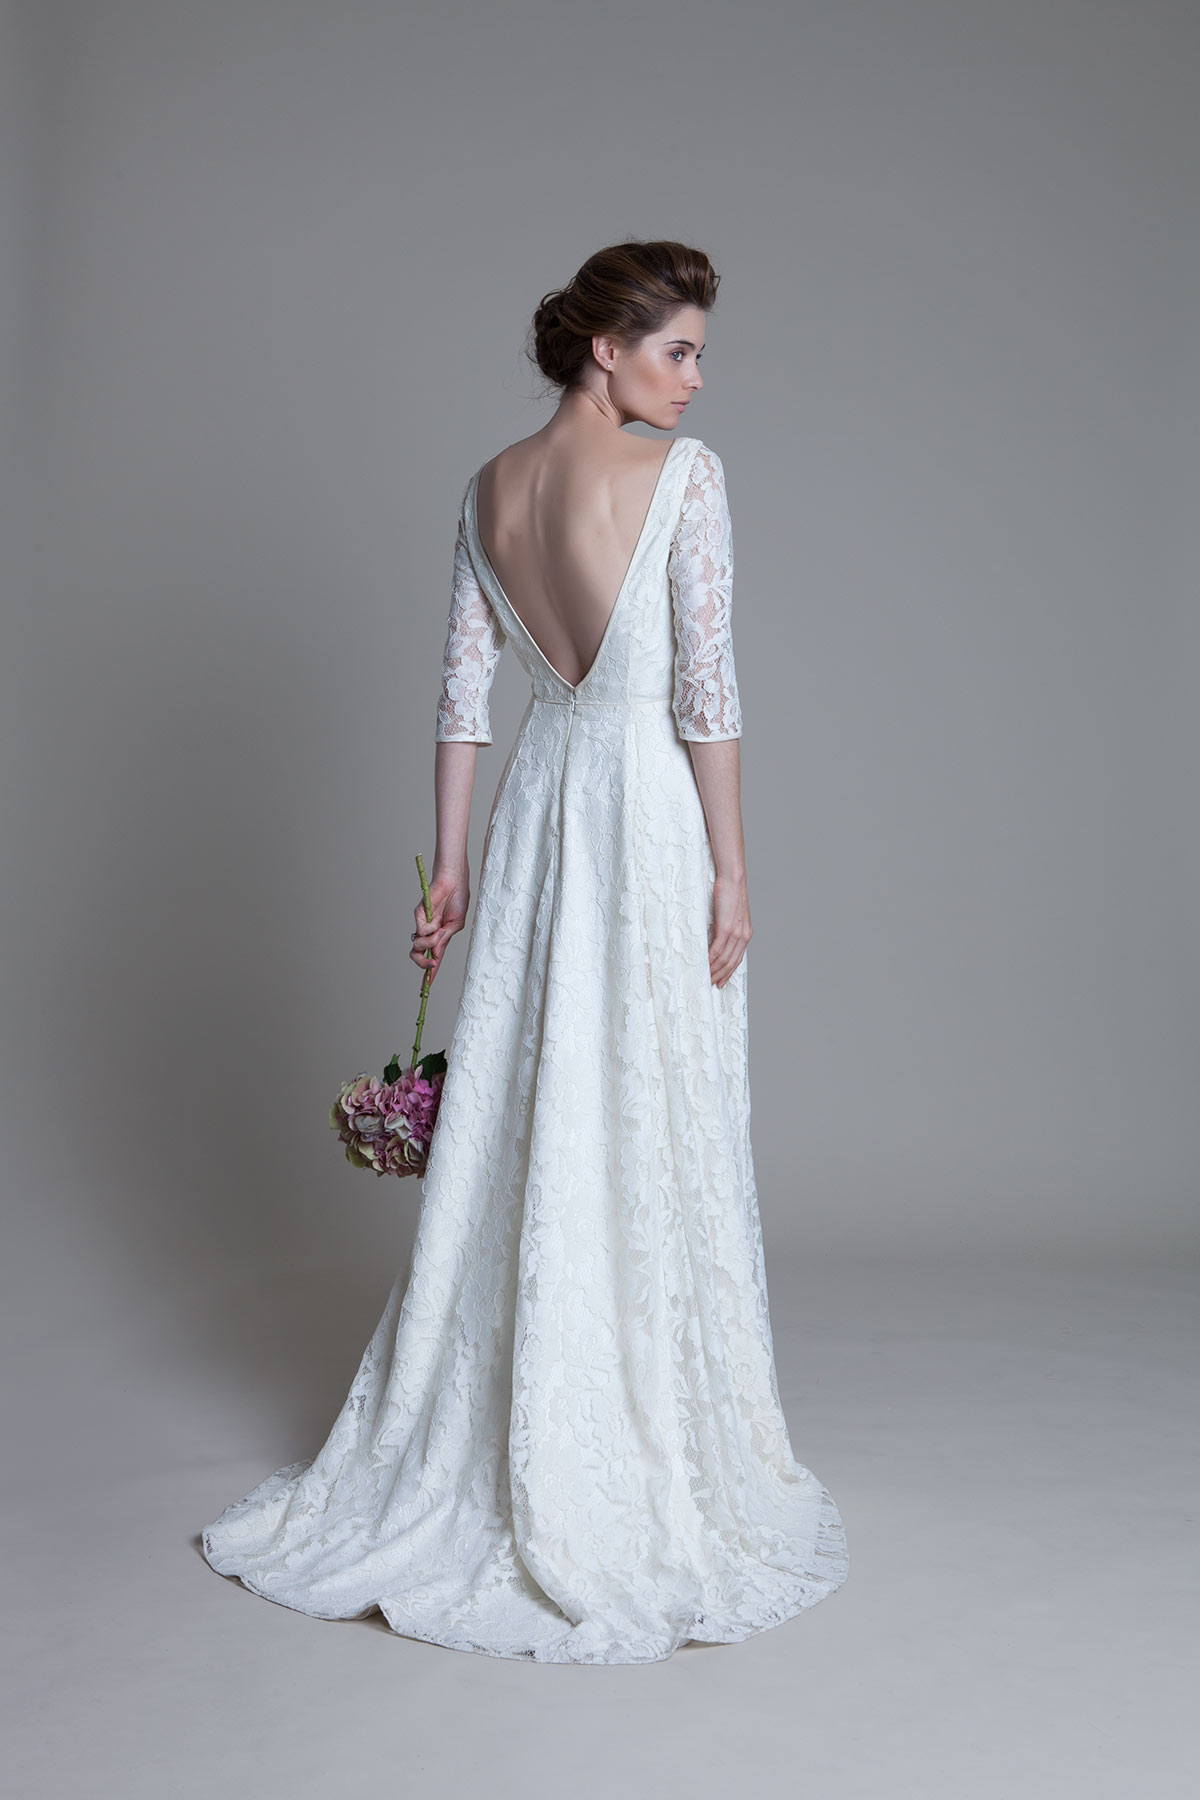 Back view of the Antonia ivory lace bridal wedding dress by Halfpenny London